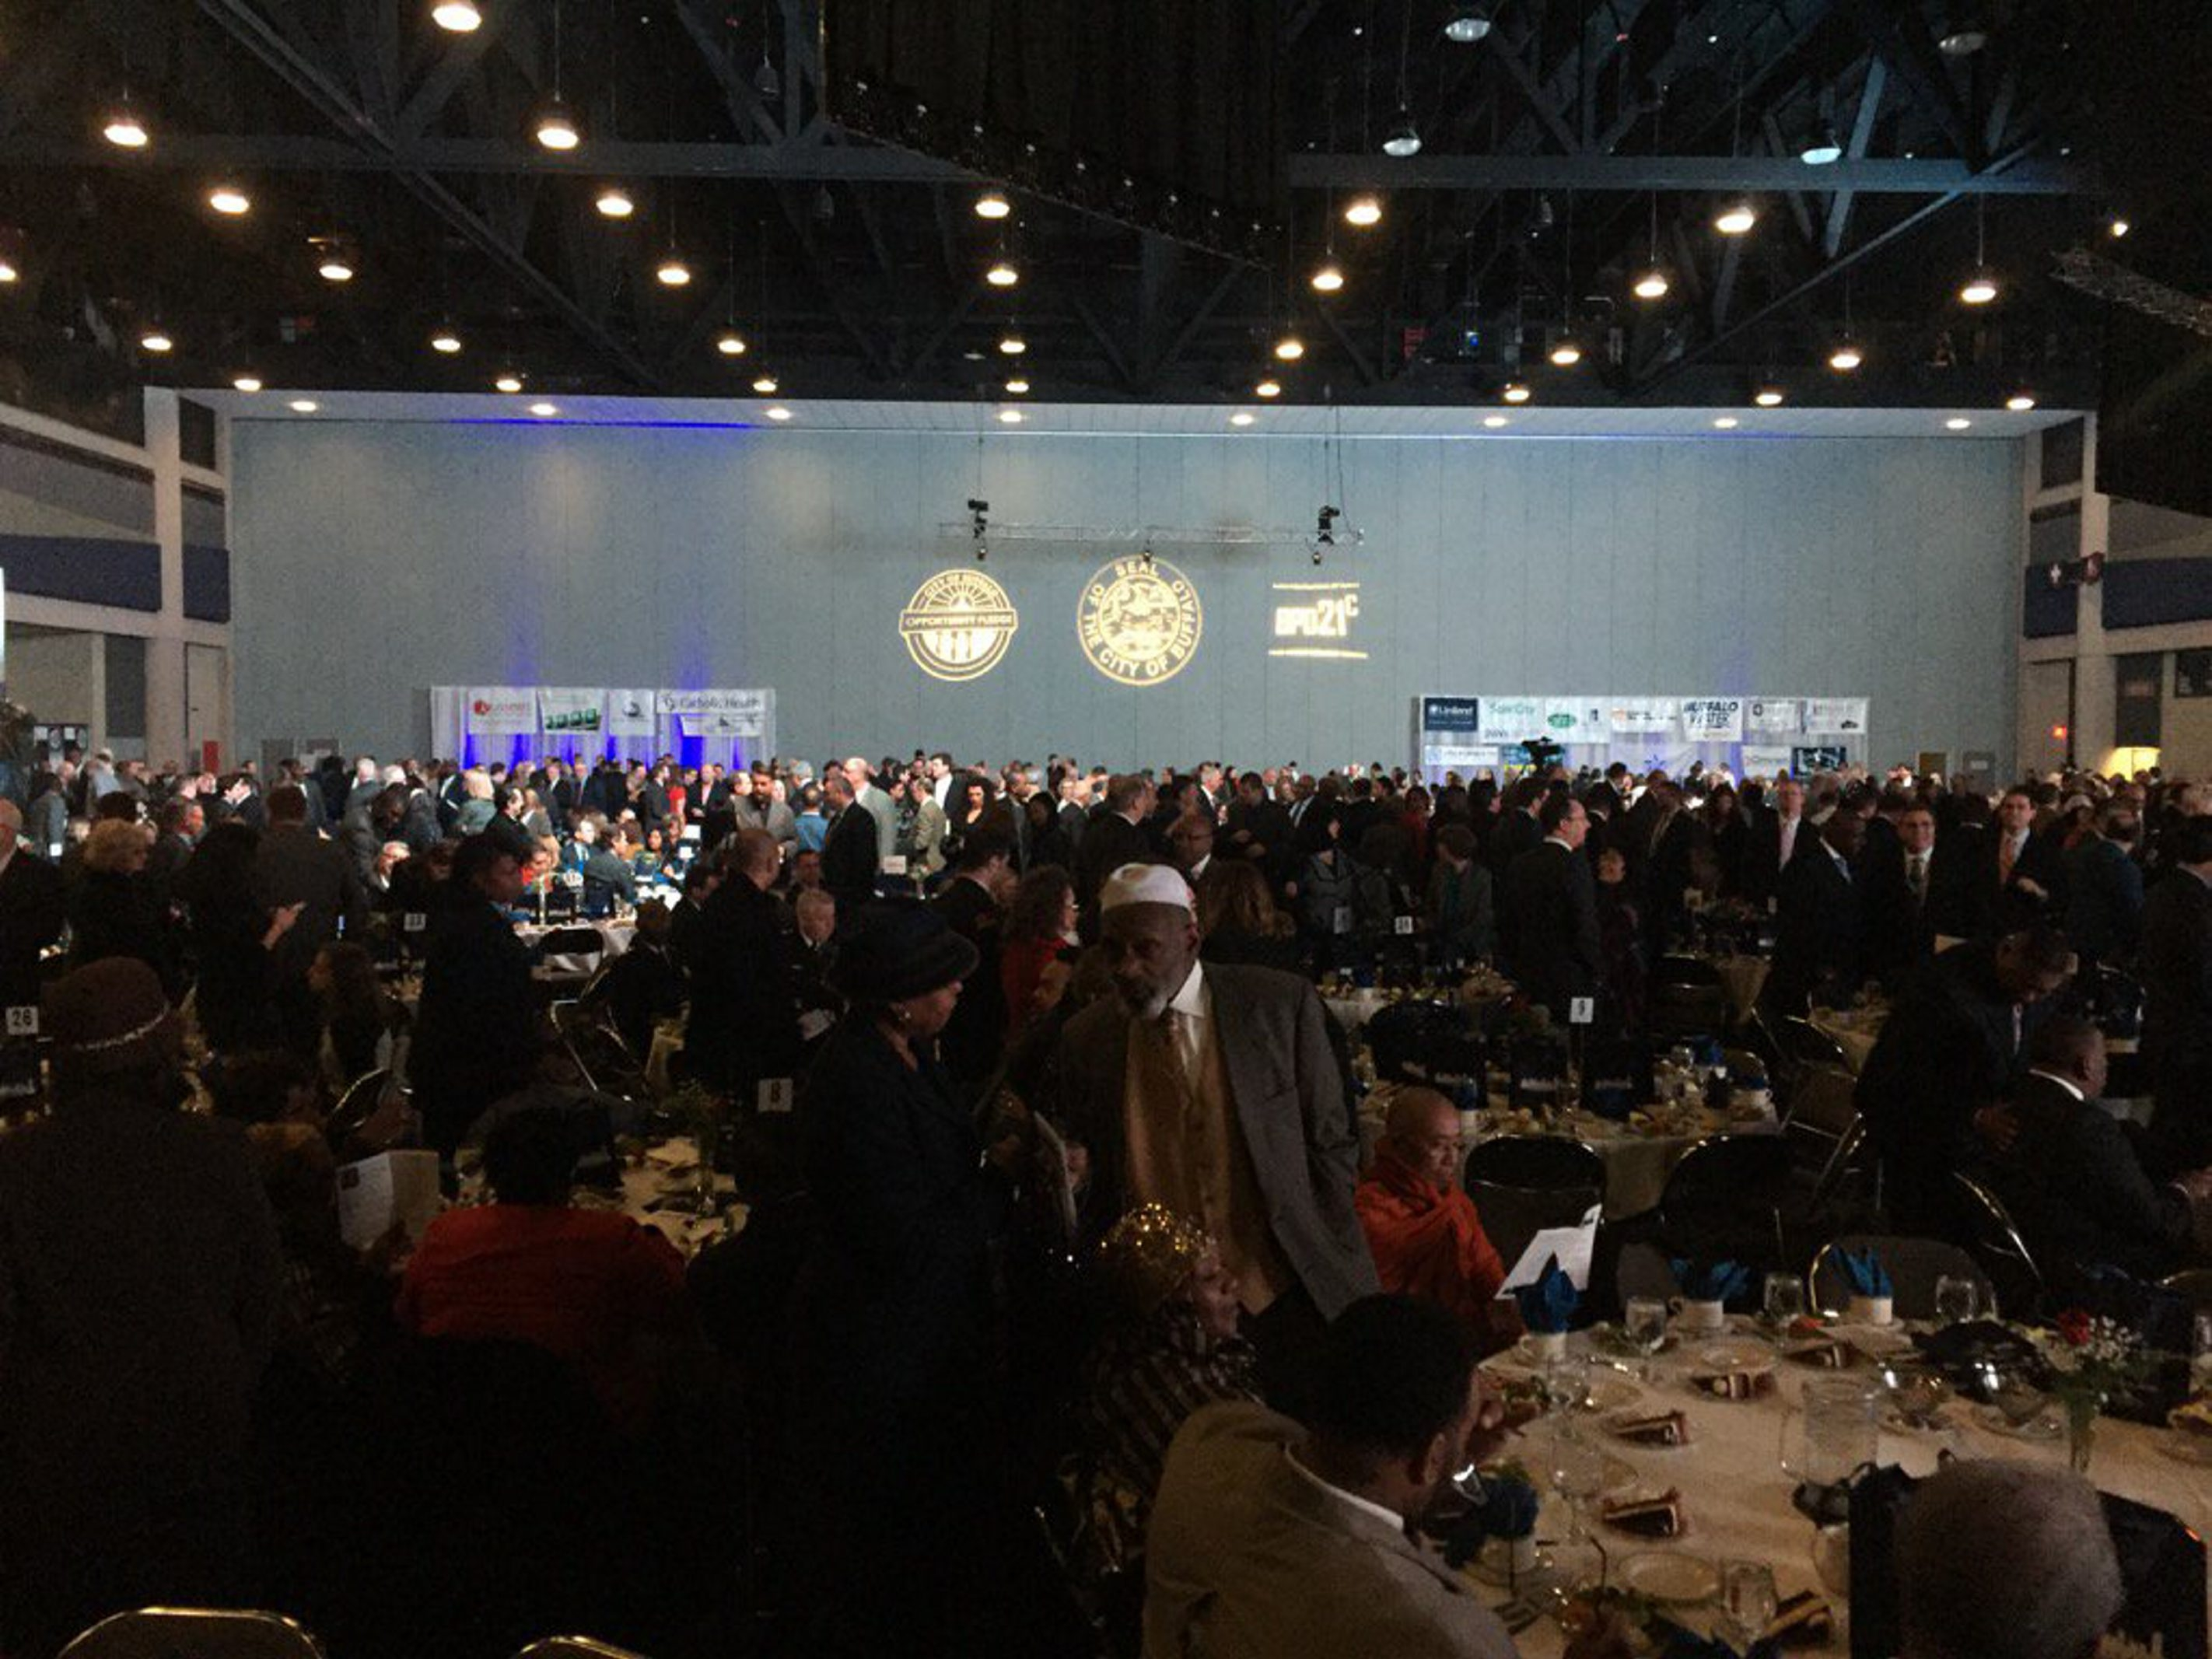 """""""The state of our city is strong,"""" said Mayor Byron W. Brown at Friday's State of the City address luncheon in the Buffalo Niagara Convention Center. (John Hickey/Buffalo News)"""